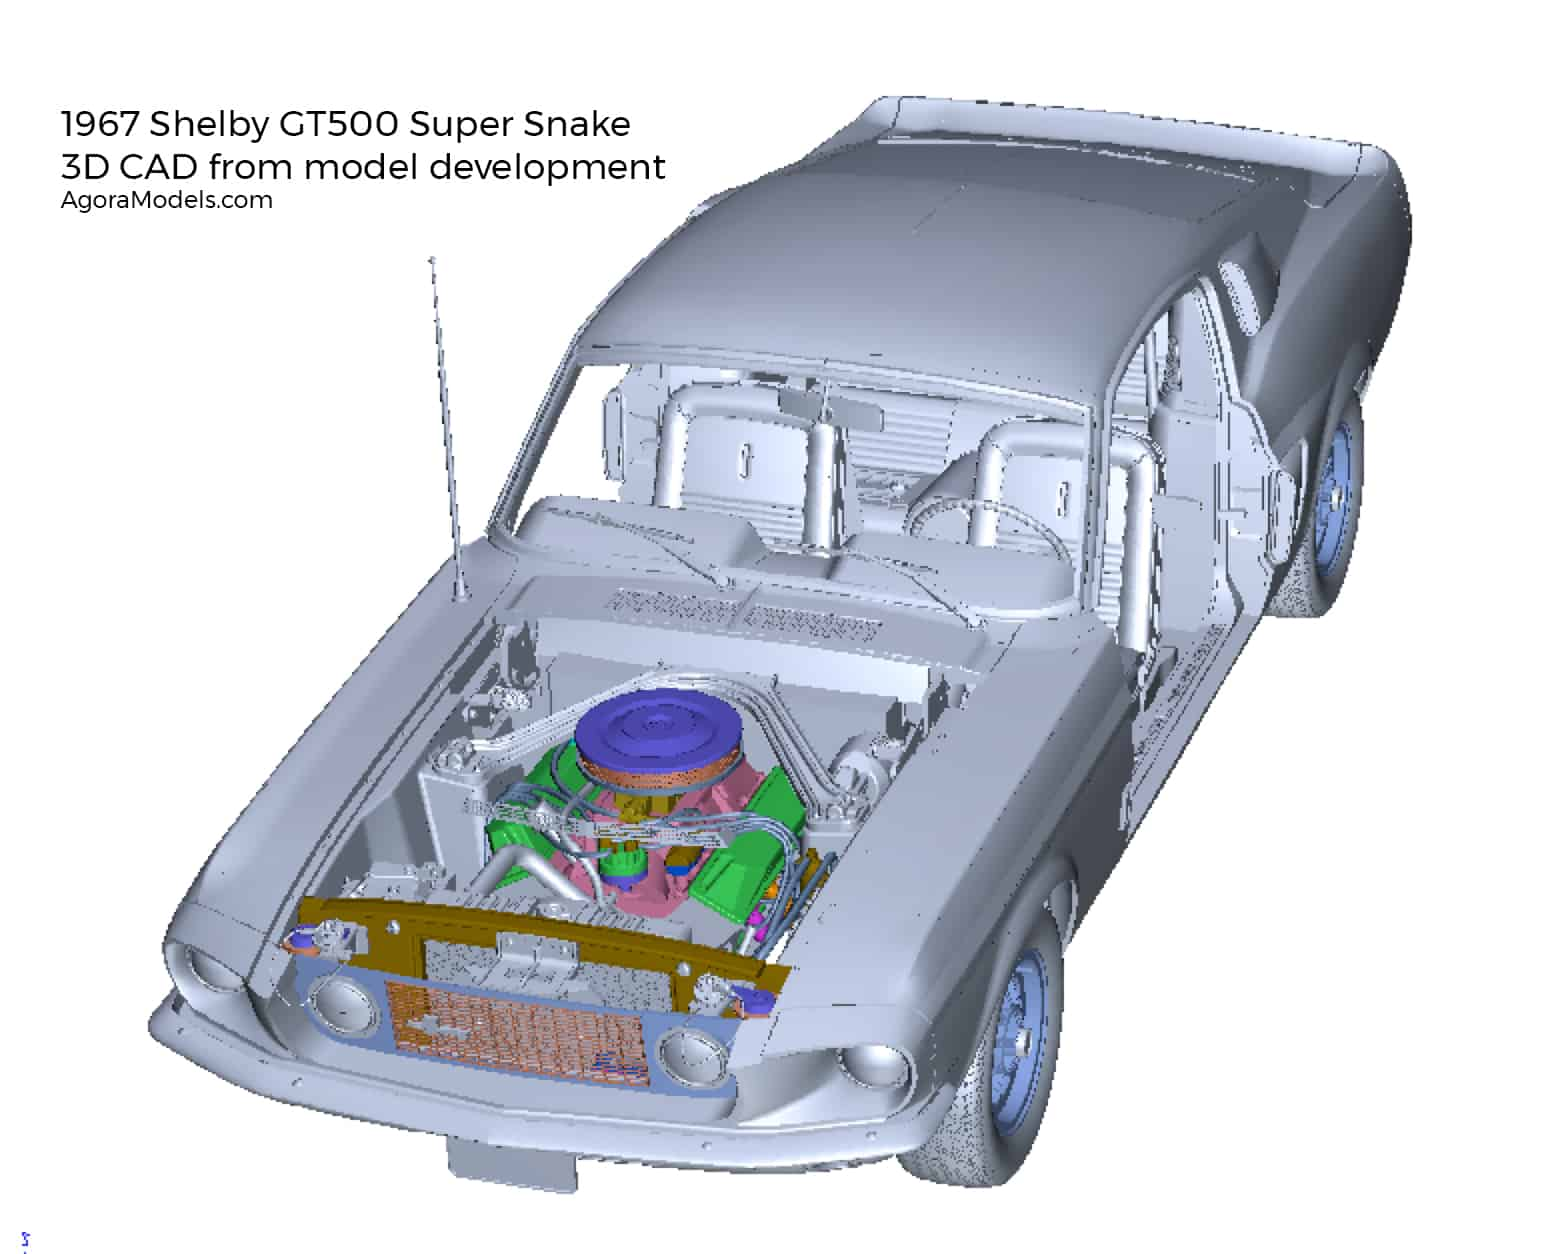 Shelby Super Snake 3D CAD drawing front